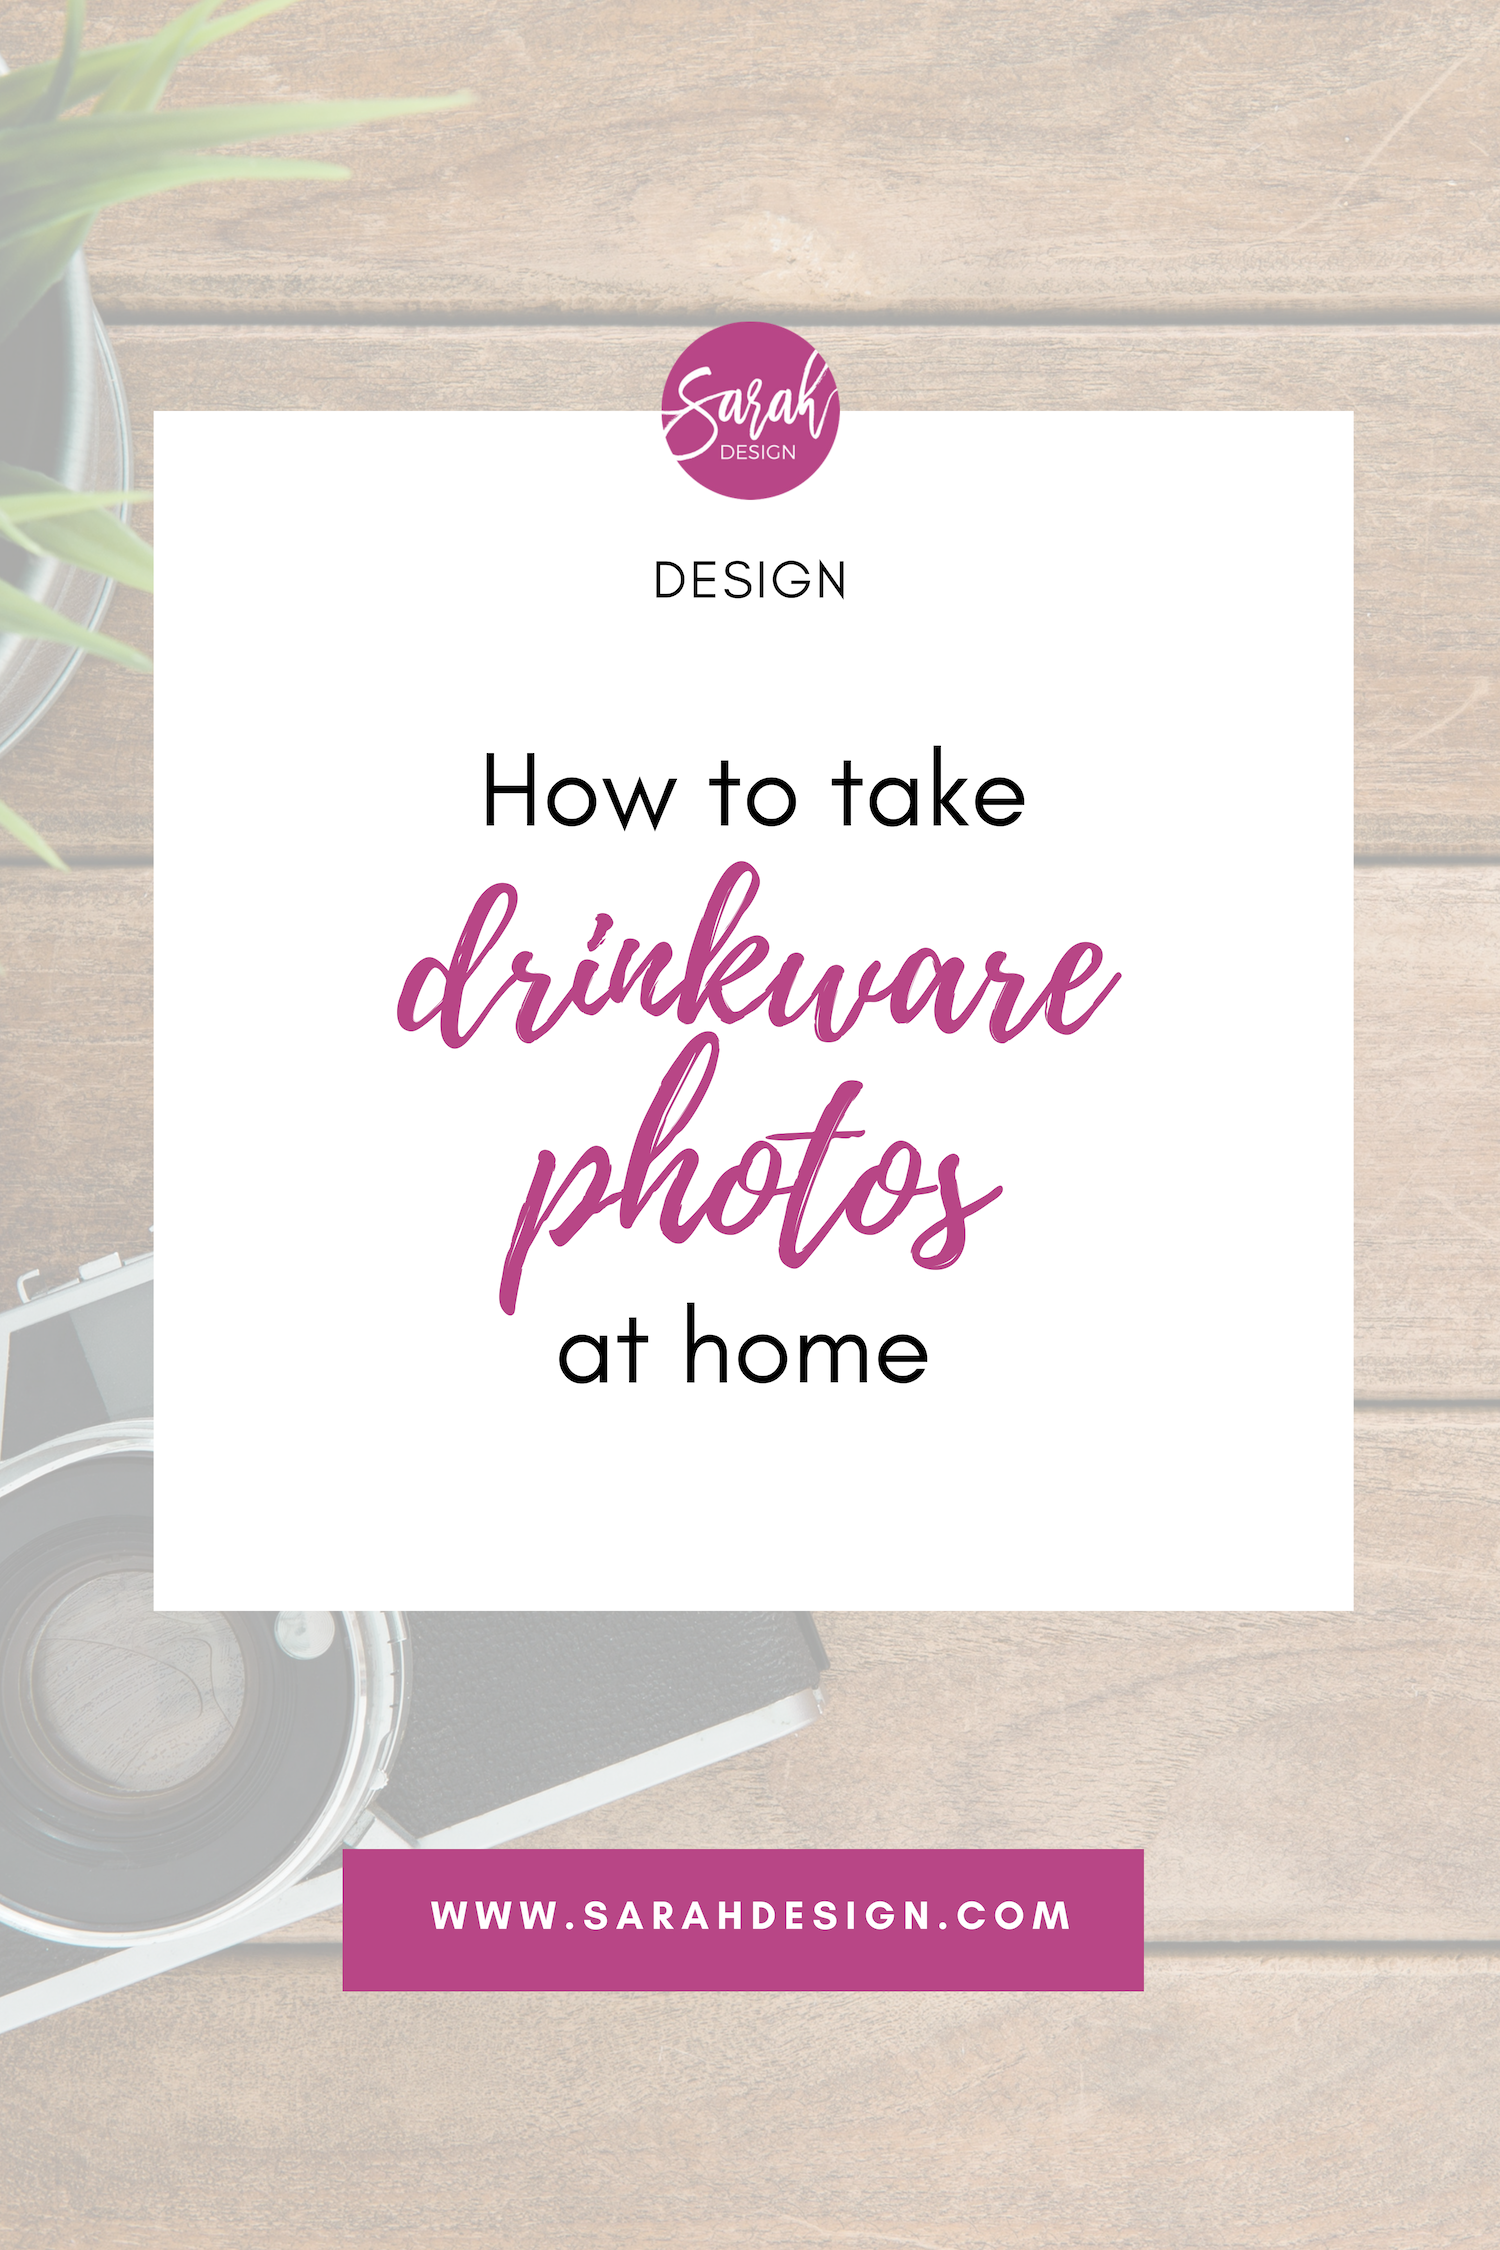 [ Video ] How to take drinkware photos at home by SarahDesign.com